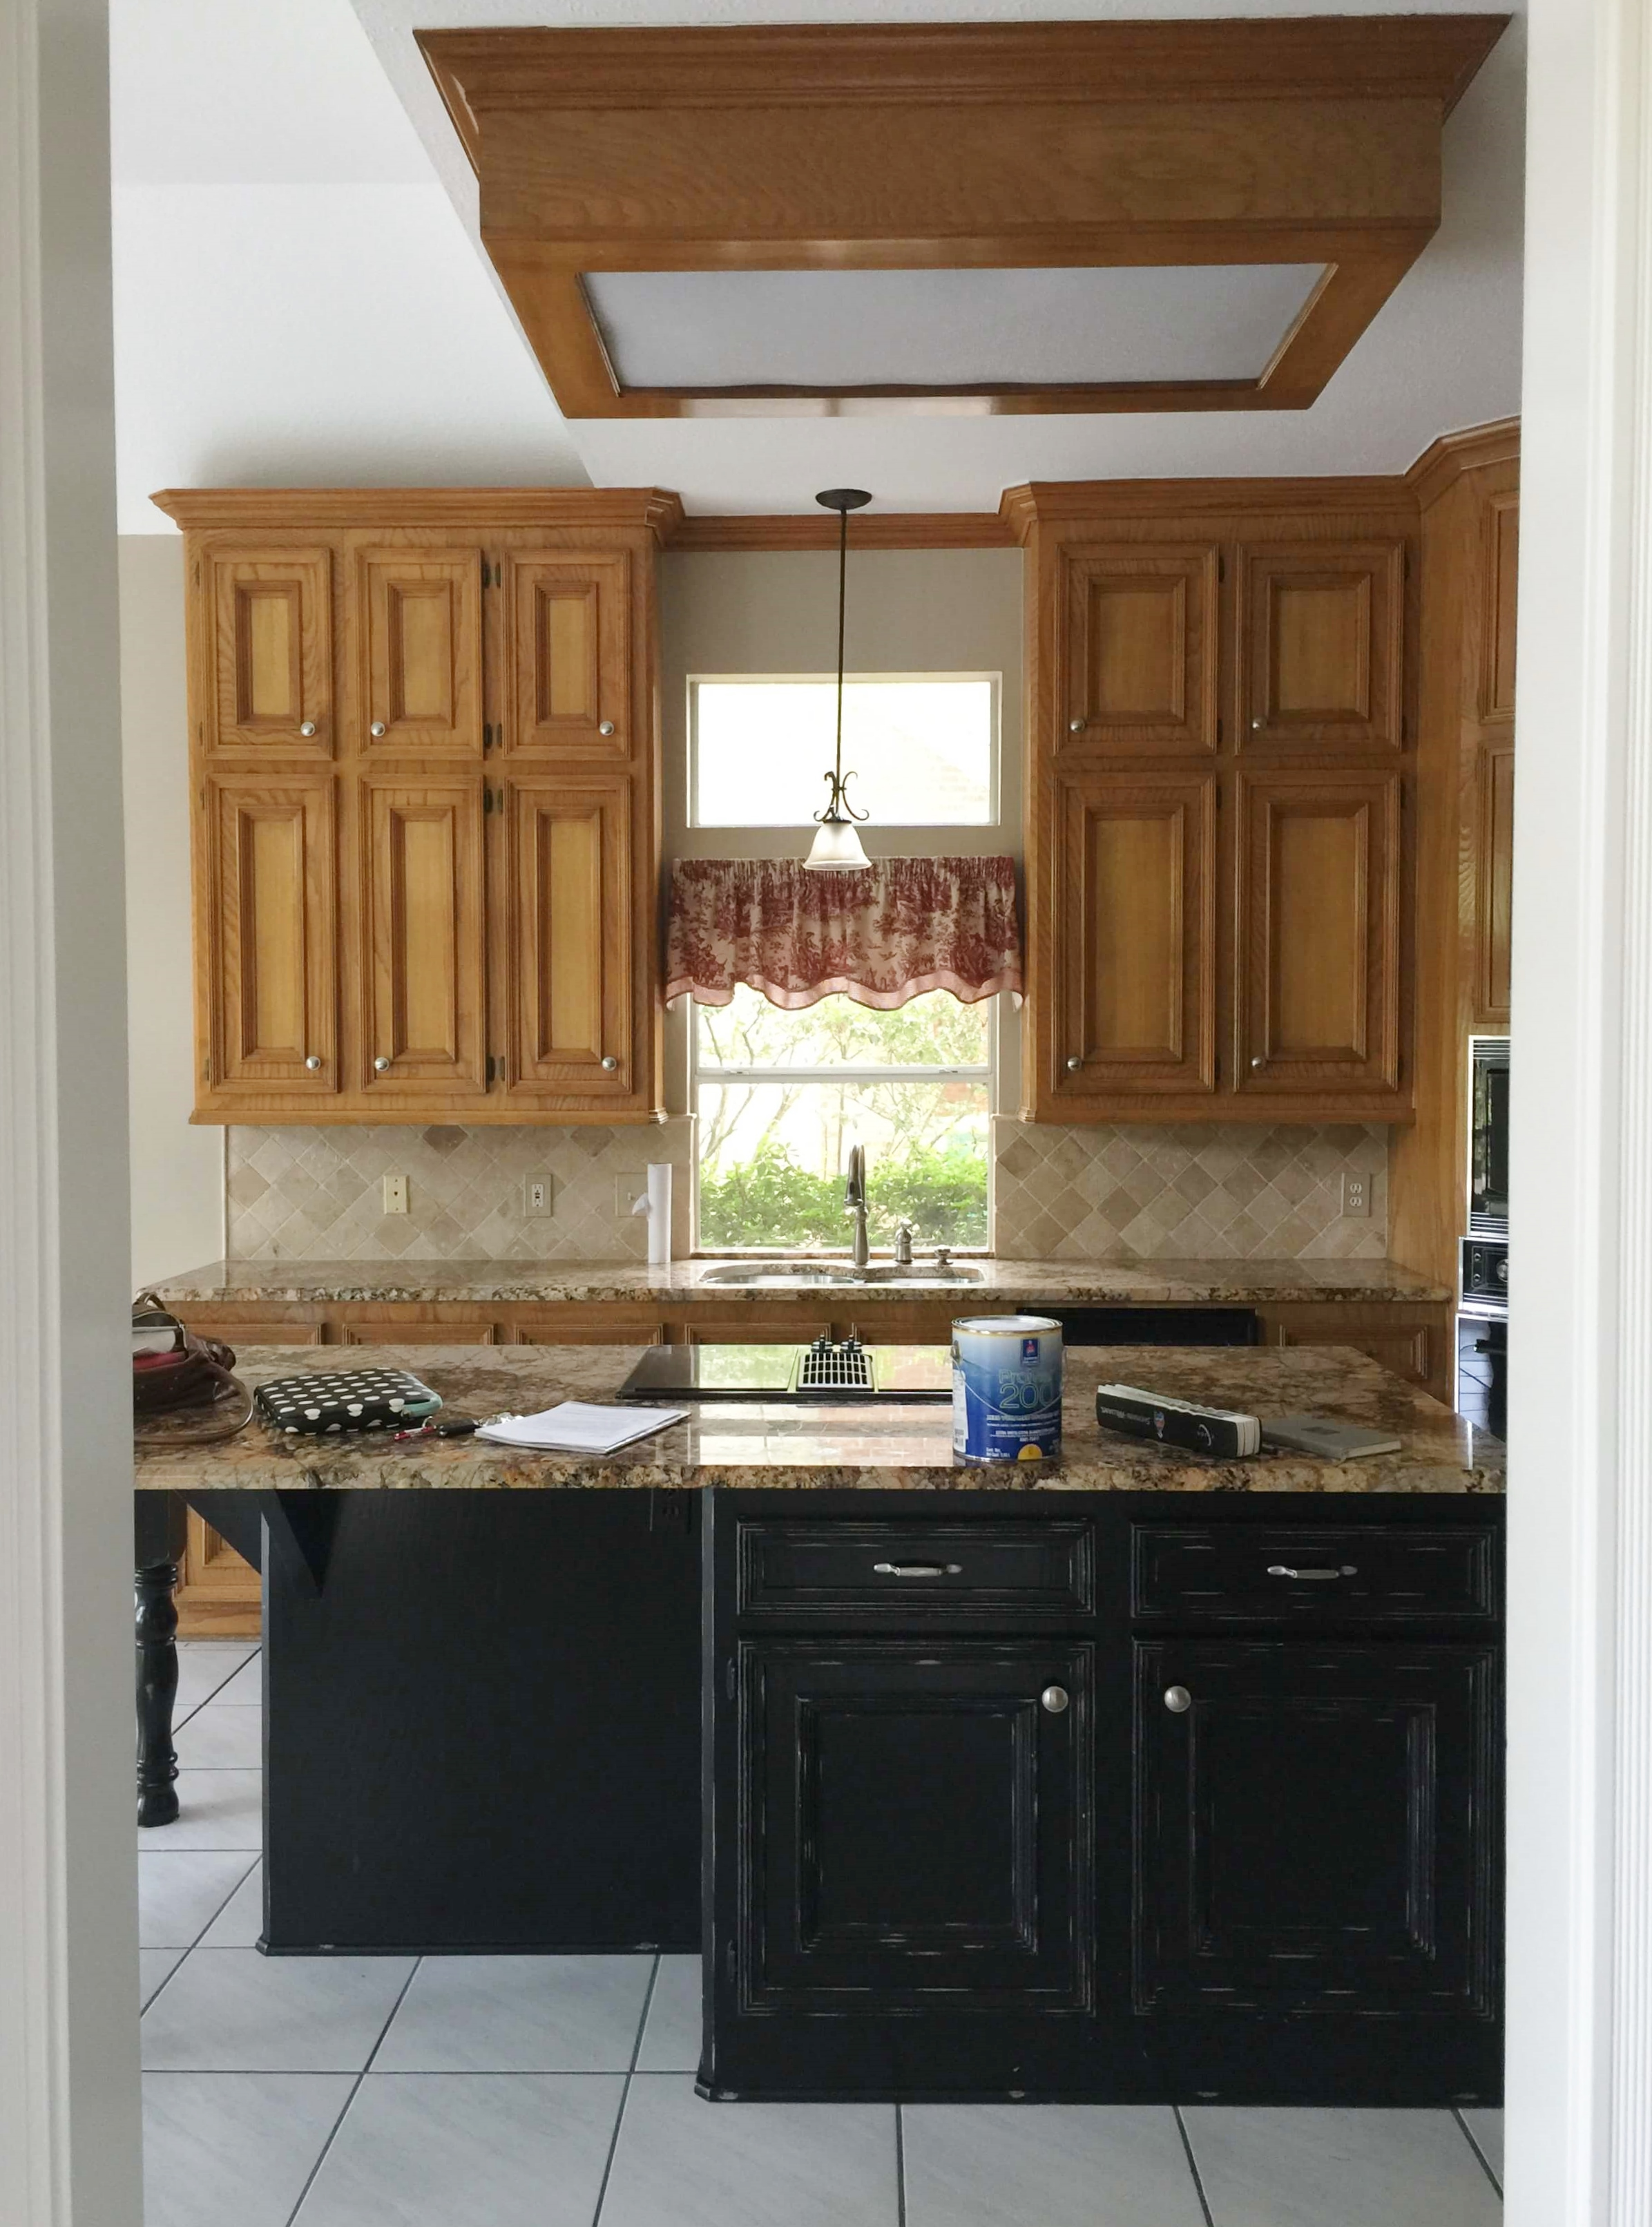 BEFORE - The kitchen window was chopped up with the transom above. A taller window would be the way to go here to make this kitchen feel more open and lighter overall.